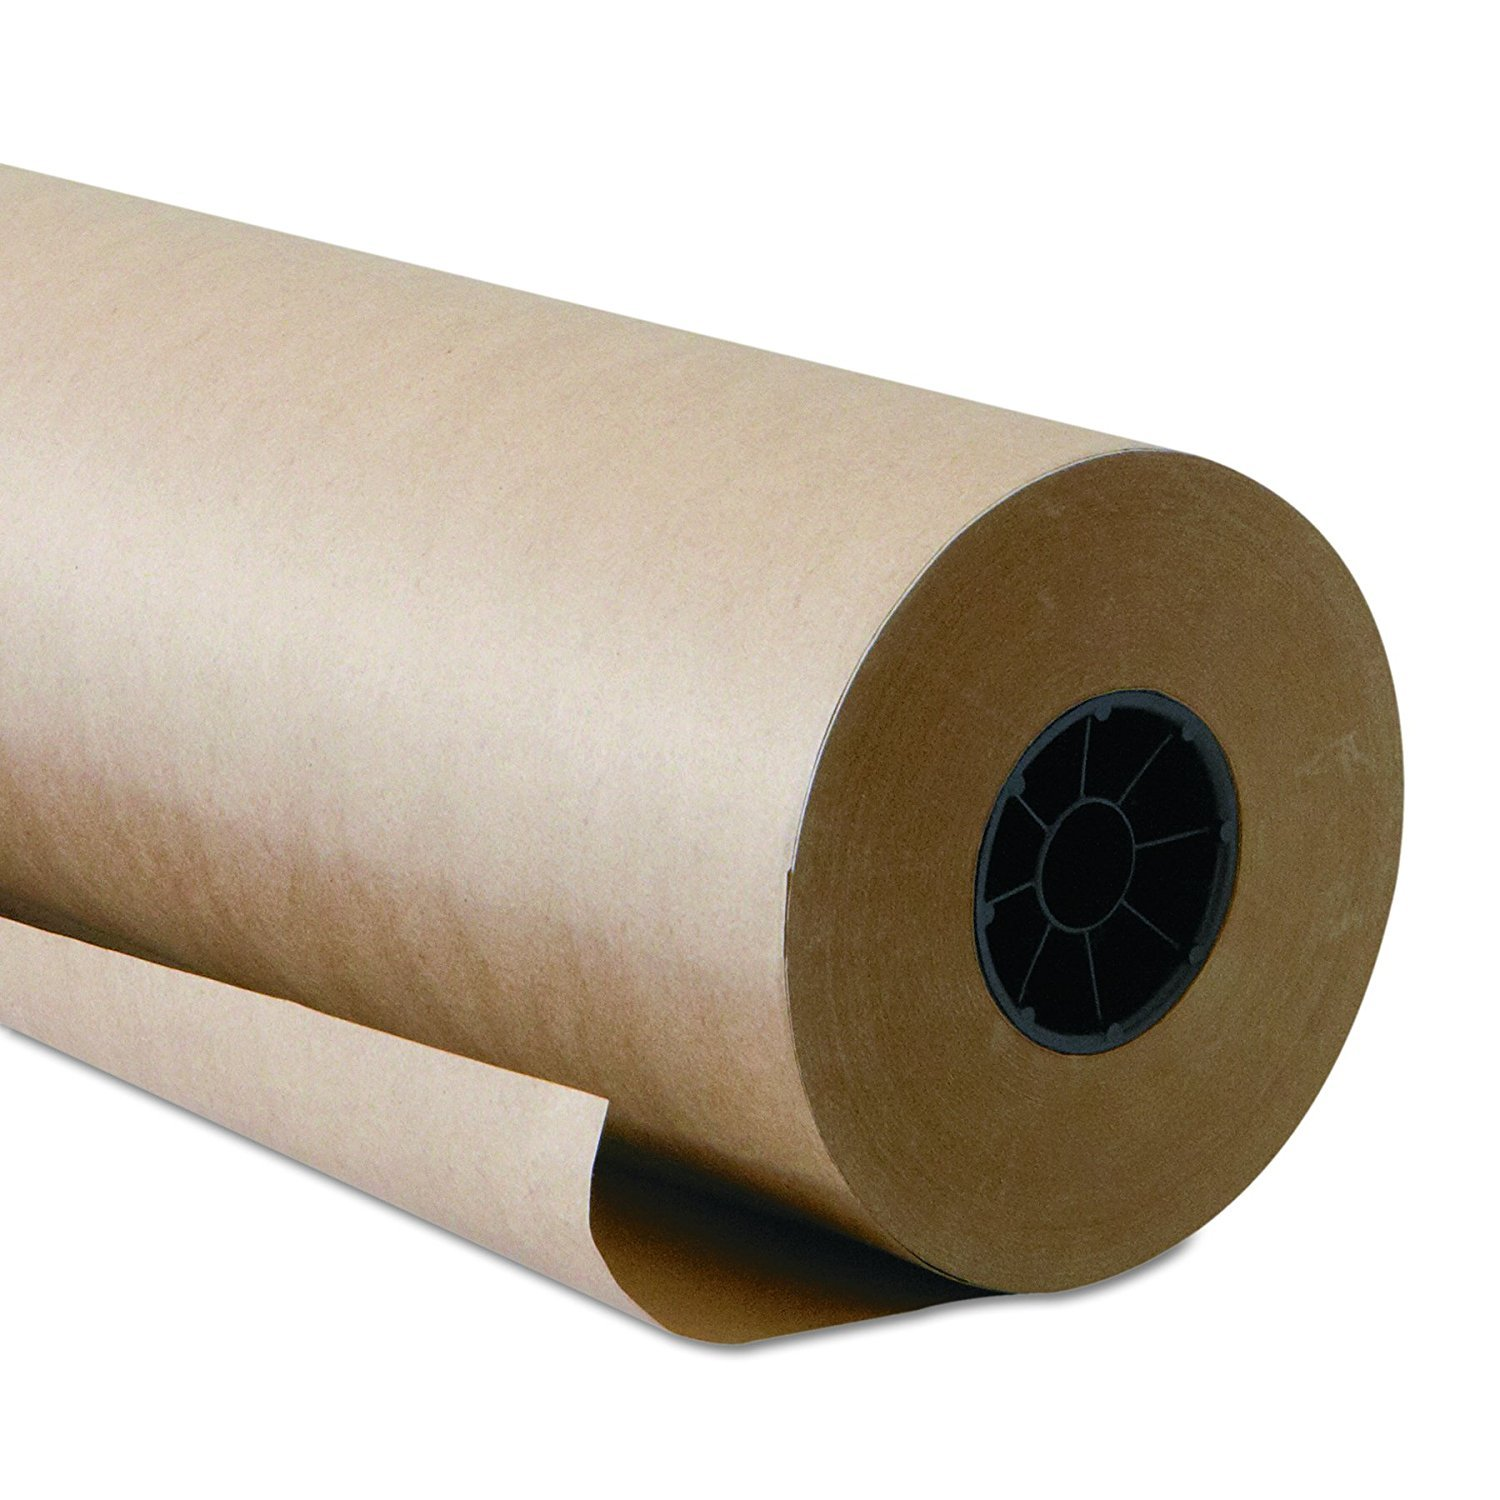 Brown Kraft Paper Roll 48 x 1800 Inches (150 Feet Long) Single Roll - 100% Recycled Materials, Multi-use, Wrapping Paper, Table Top Cover, Moving and Shipping Paper by Woodpeckers by Woodpeckers